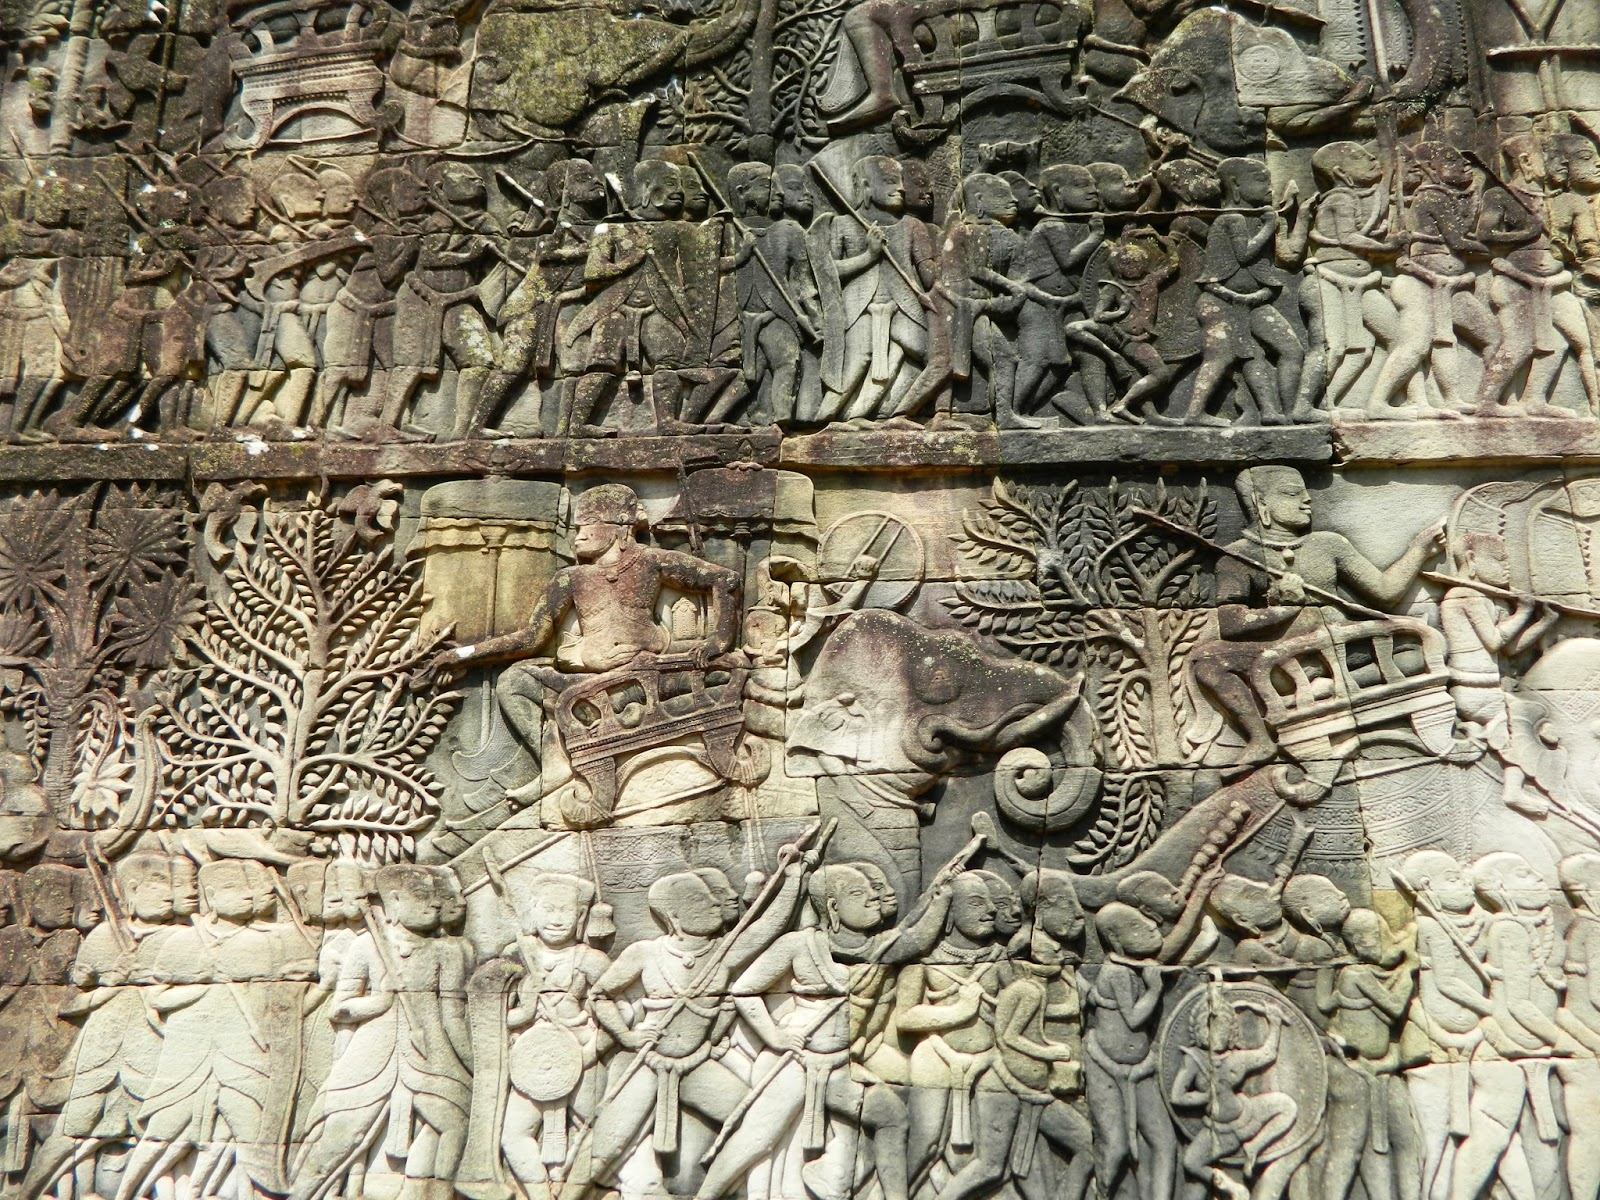 The sculptures at the Bayon has much better quality and information than the Angkor Wat Temple